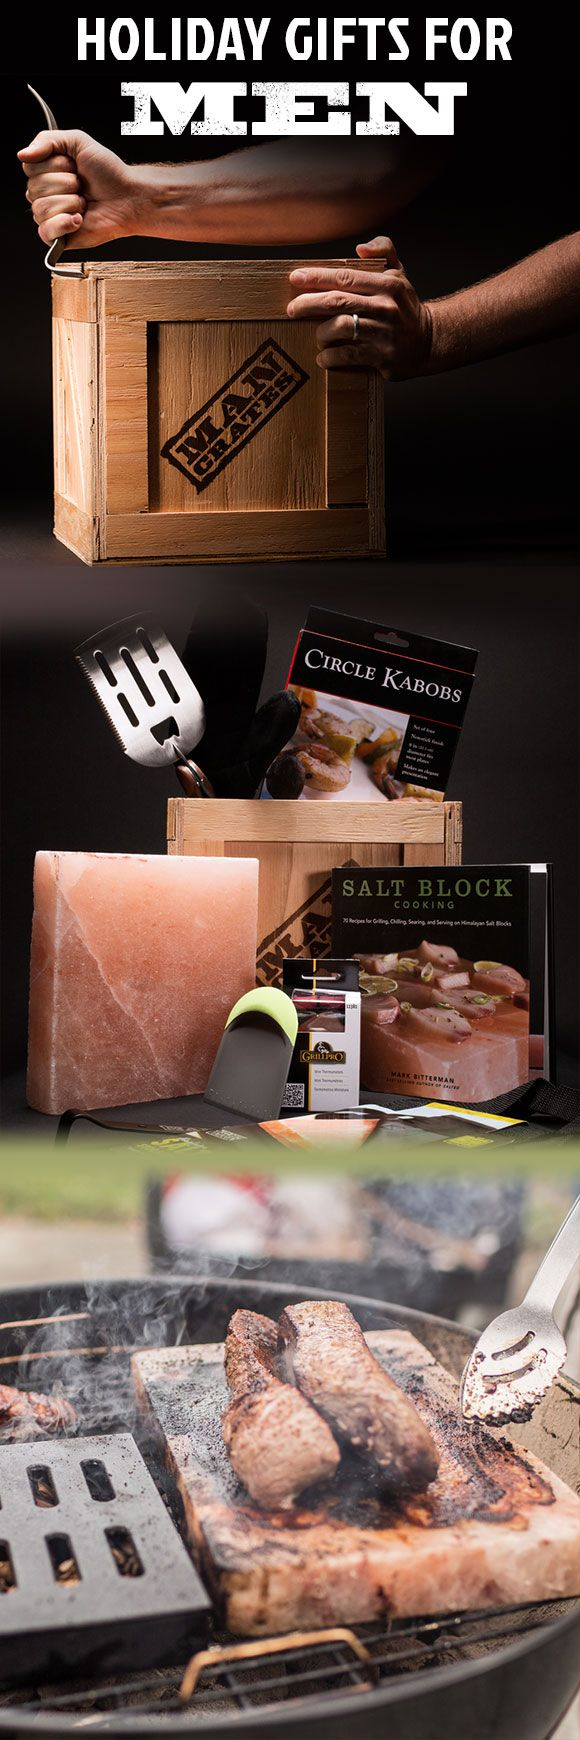 The best gift this Christmas won't be under the tree, it'll be on the grill: a steak seared in majesty! The Everest Grill Crate features a Himalayan Salt Block and recipe book, so he can explore uncharted territories behind the grill with the pinnacle of savory flavor. A must-have holiday gift for any grill master.